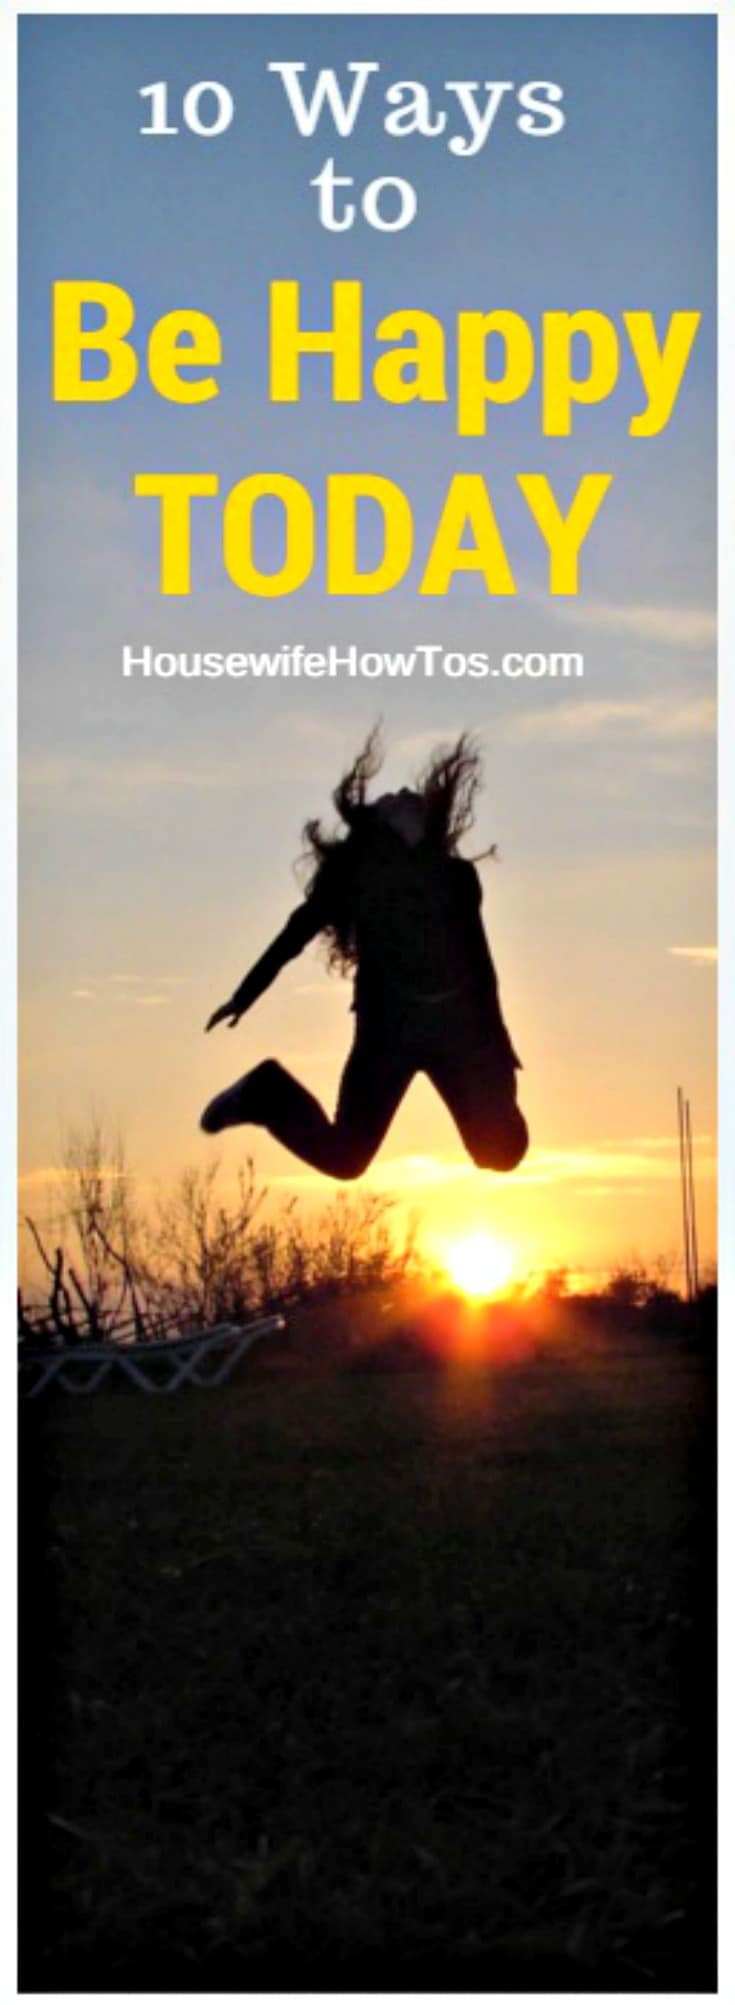 Pin 10 Ways to Be Happy Today